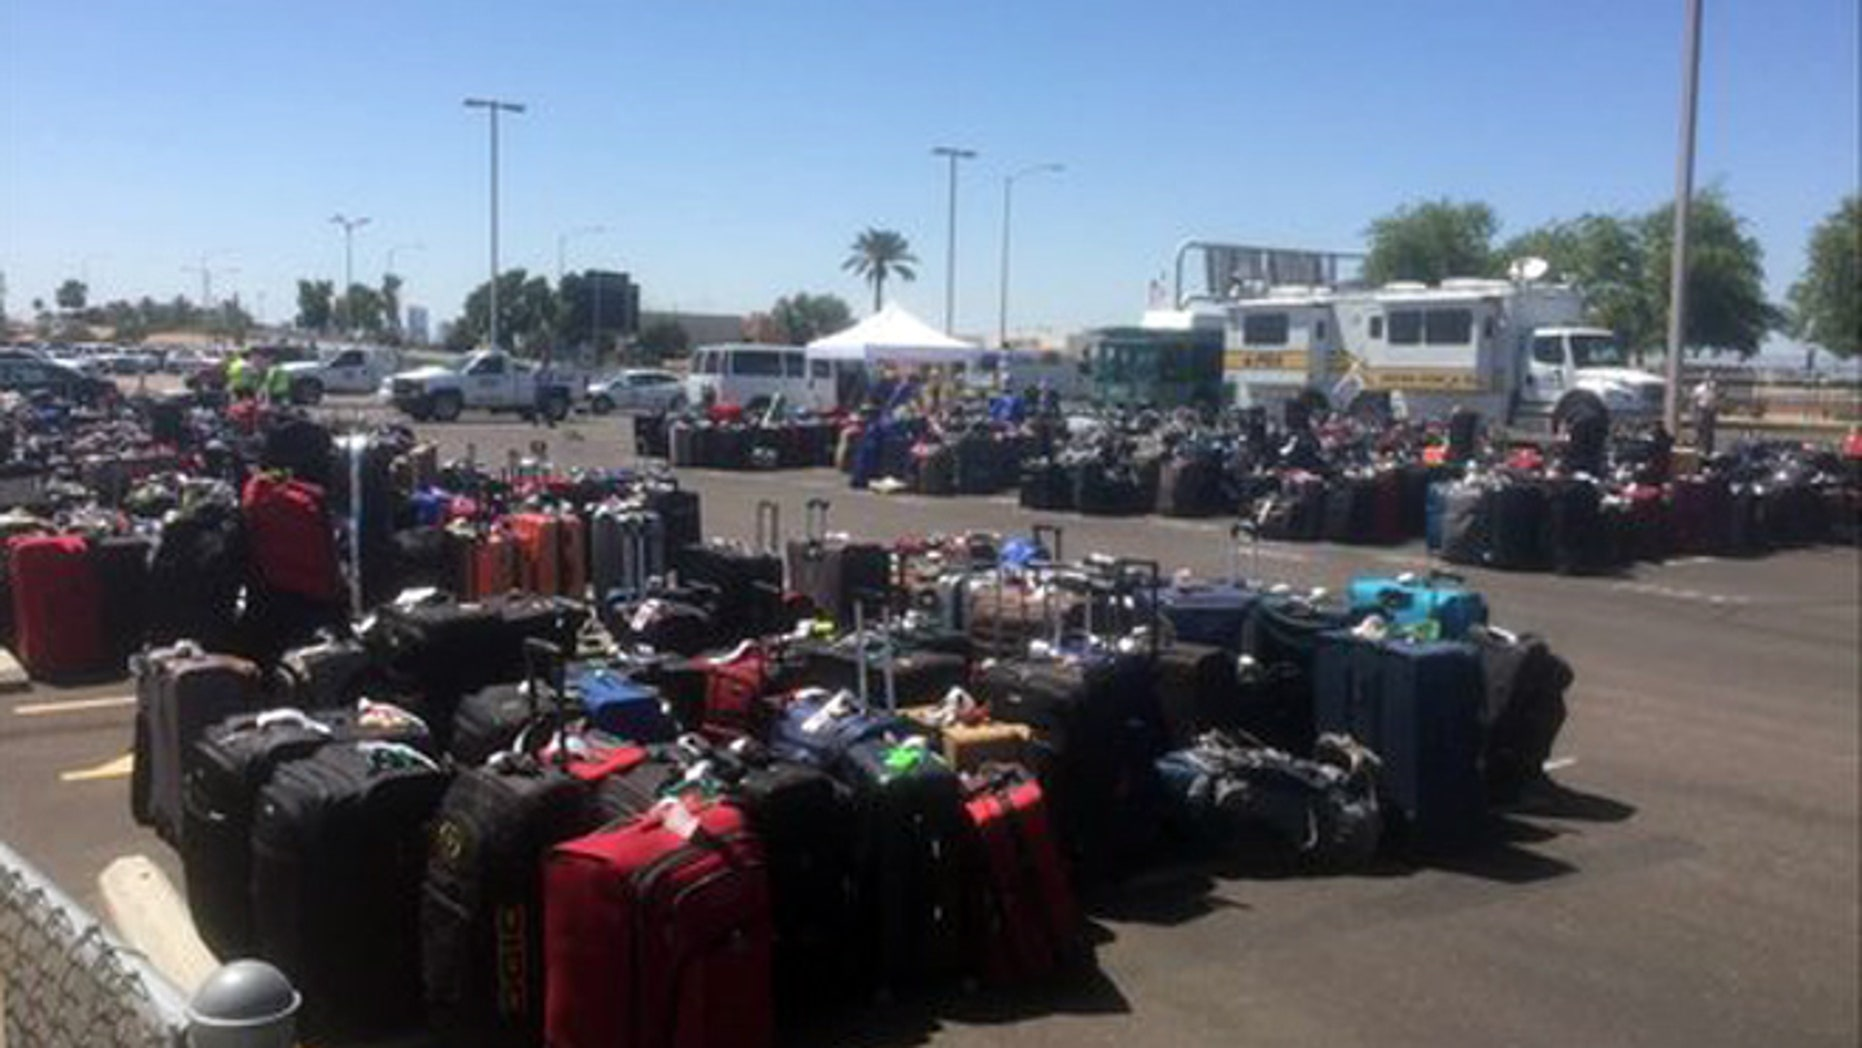 May 12, 2016: A bag-screening issue caused more than 3,000 bags checked bags to miss their outbound flights in Phoenix.